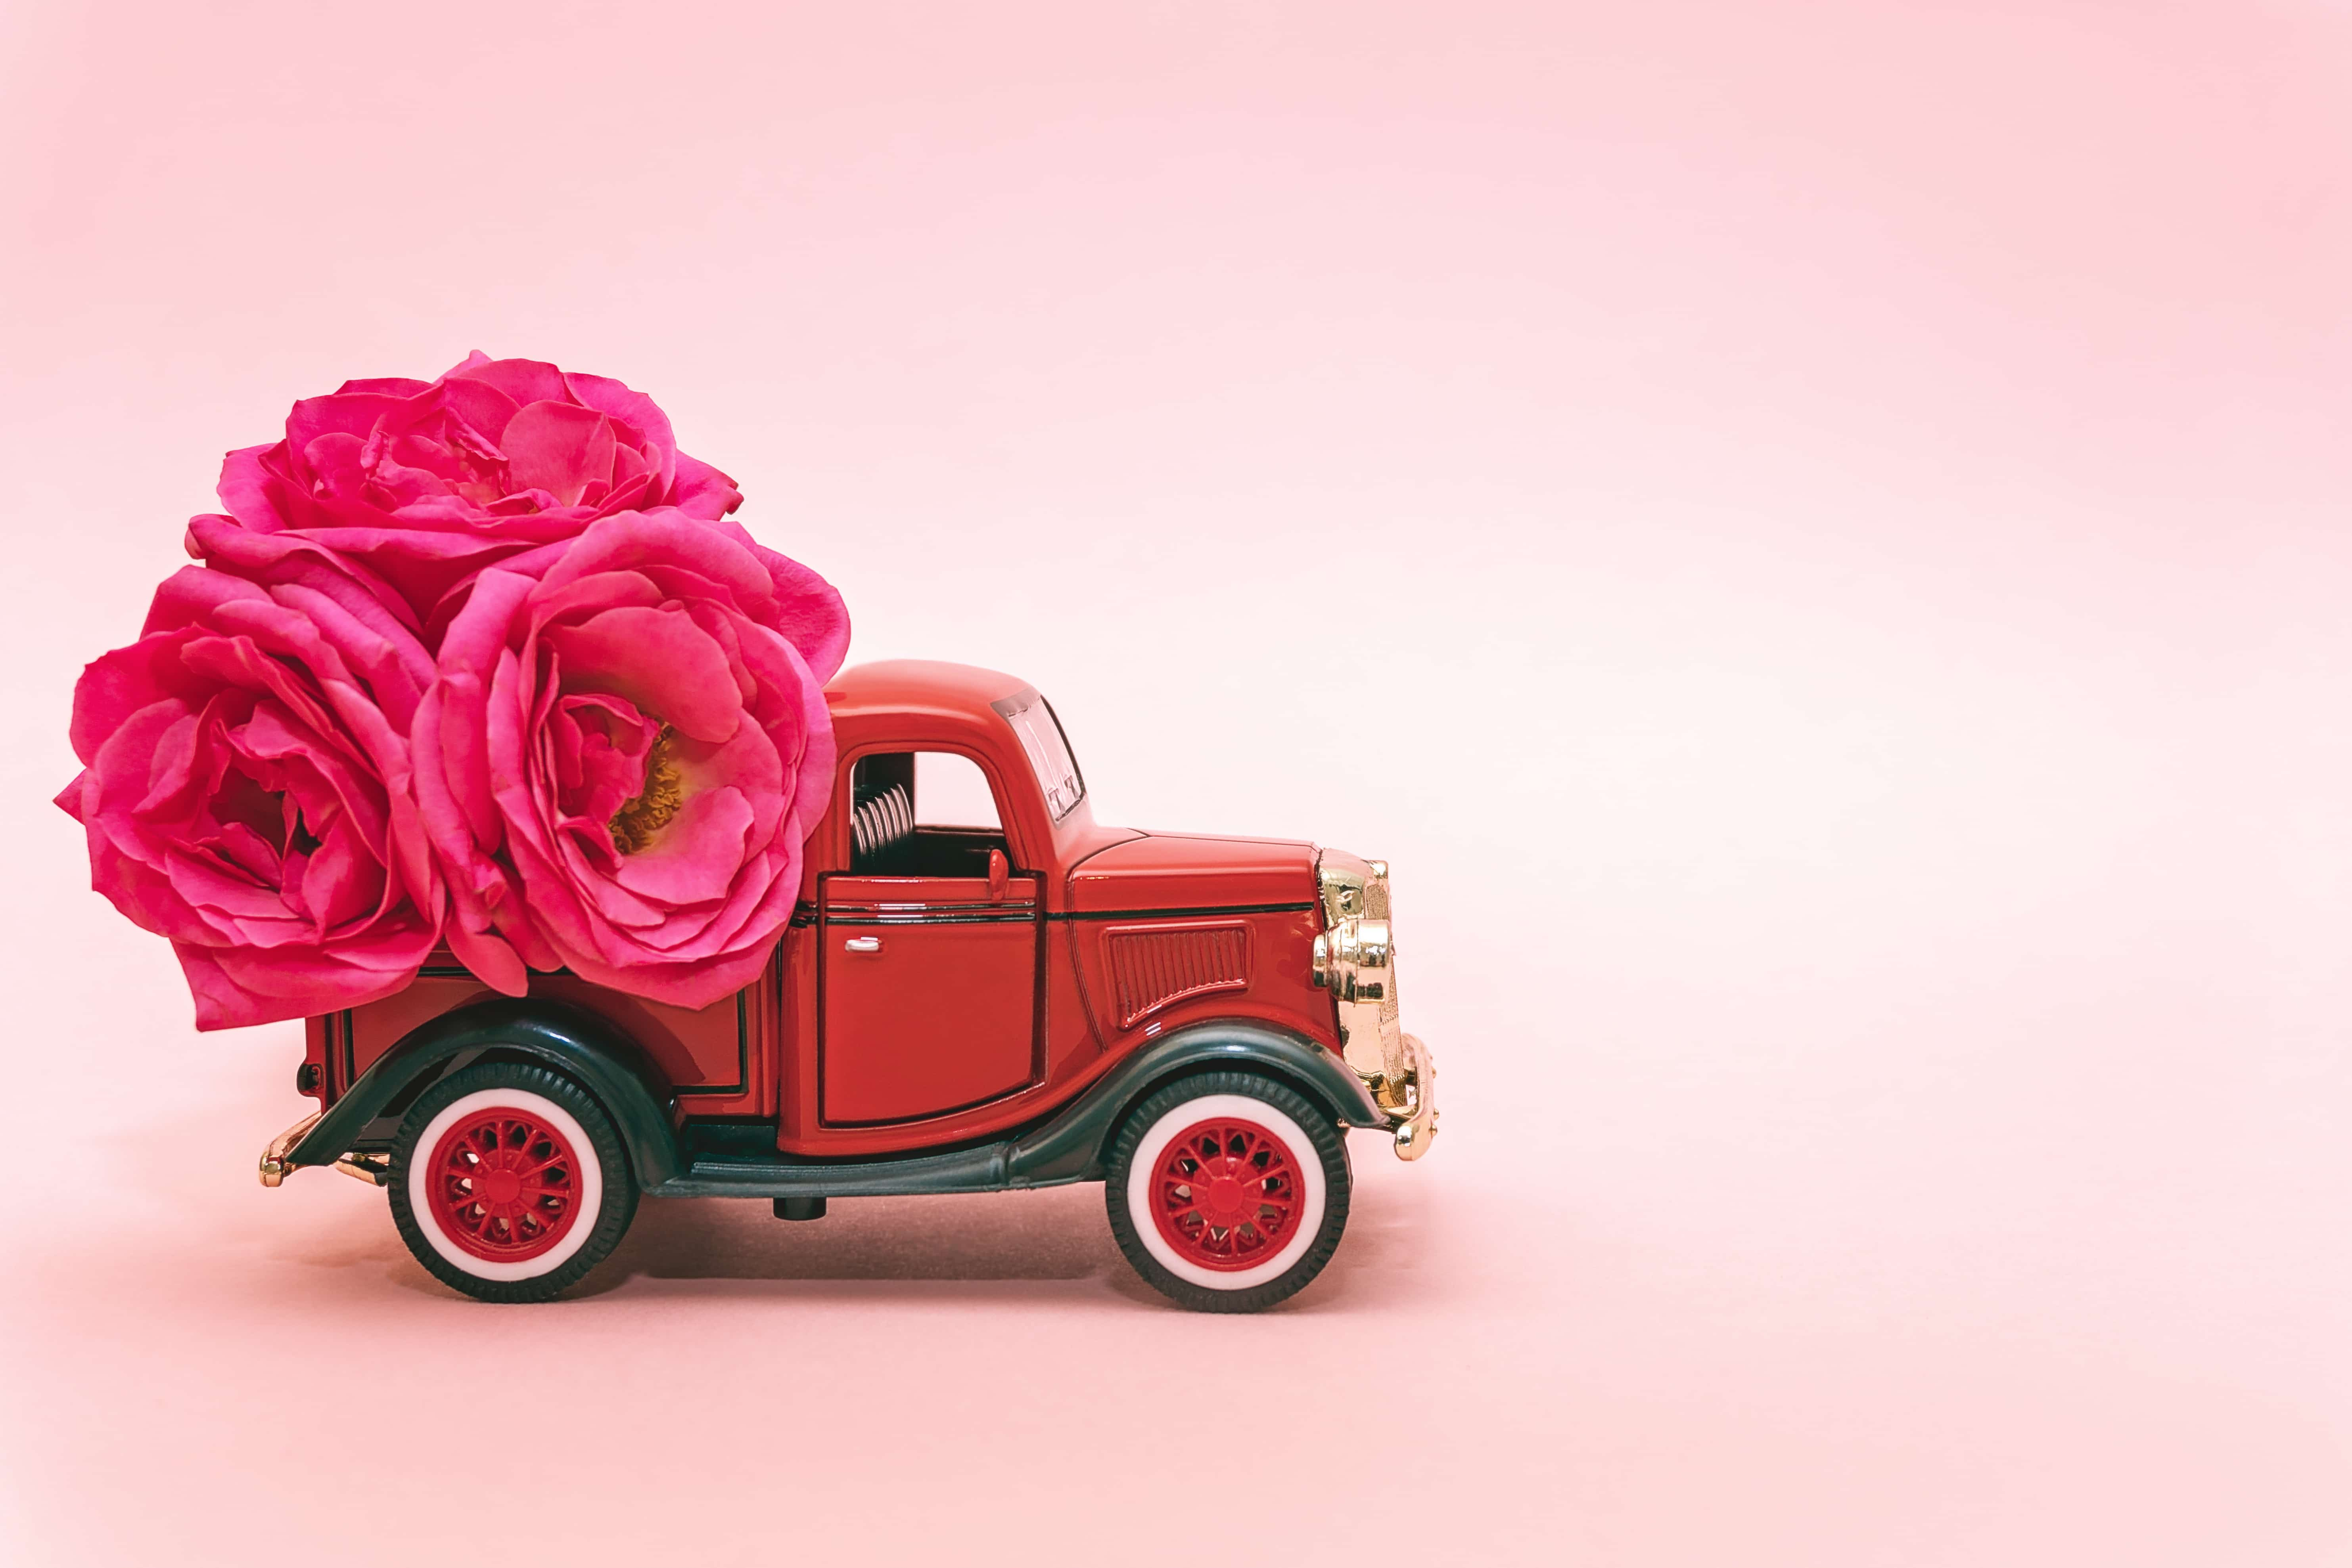 Red toy truck delivering bouquet of rose flowers on pink background. February 14, Valentine's day, 8 March, International Women's Day. Flower delivery. Copy space.